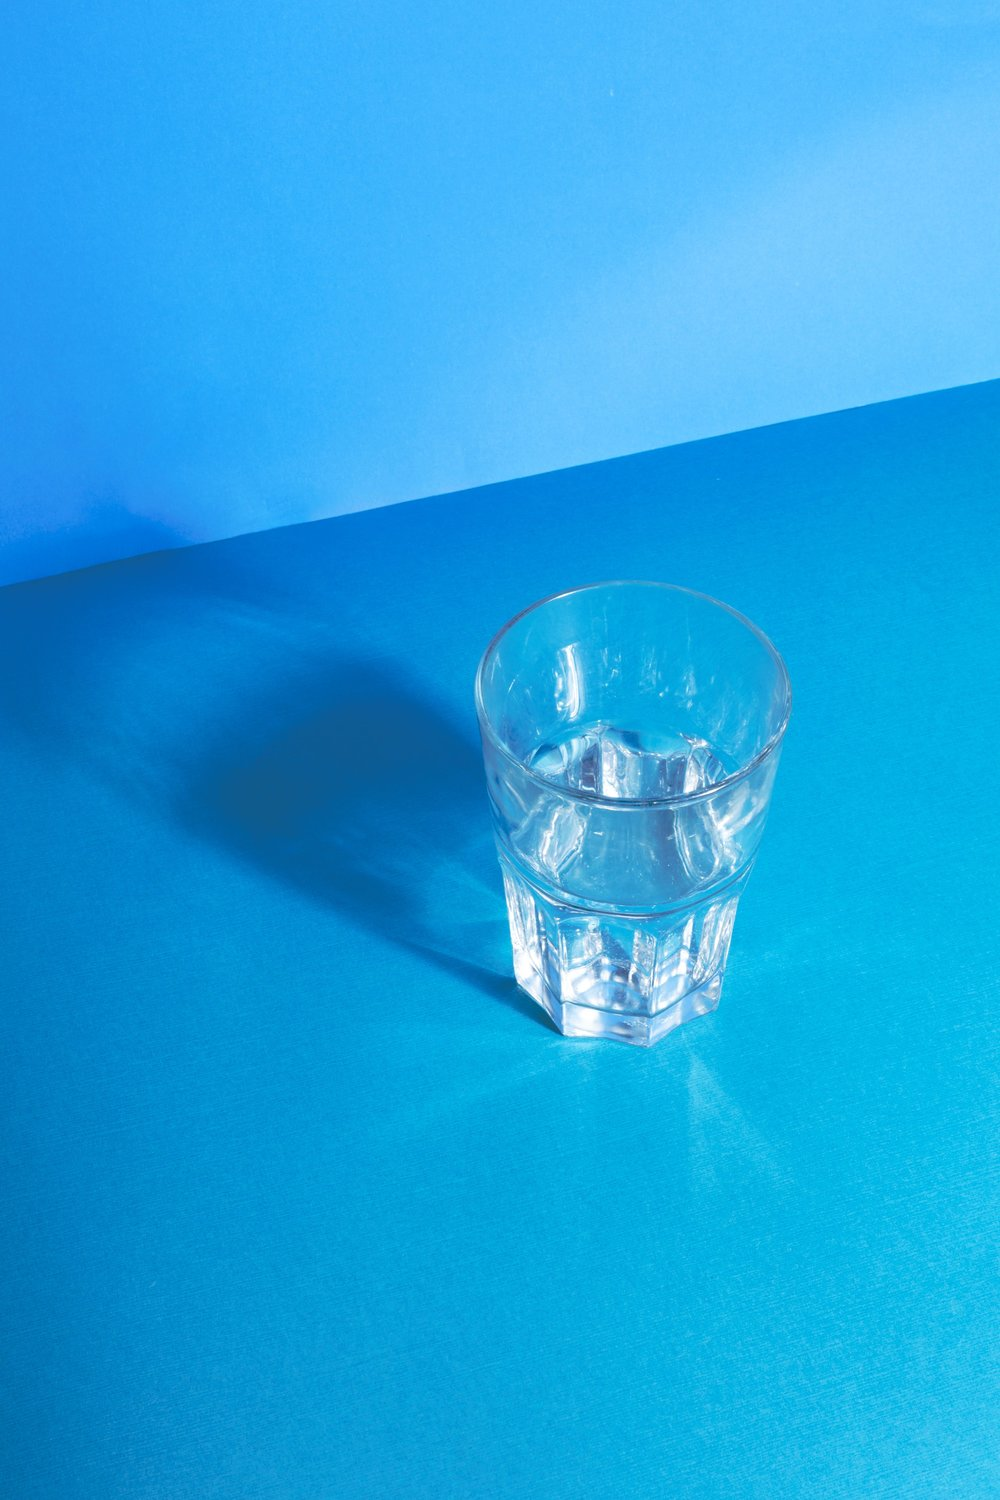 clear-water-glass-reflecting-on-blue_4460x4460.jpg